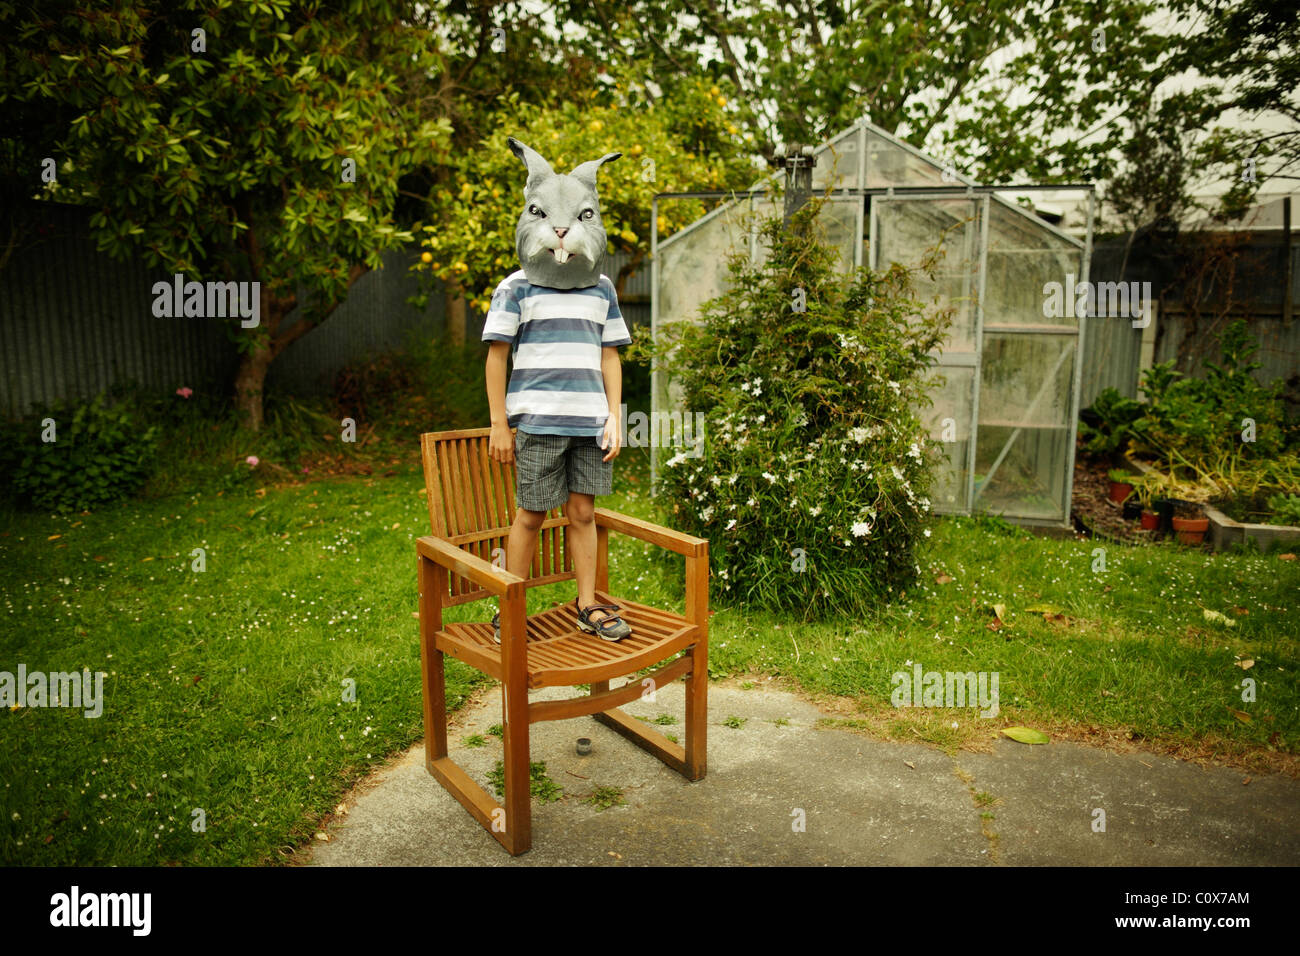 Boy with rabbit mask stands on chair in garden - Stock Image